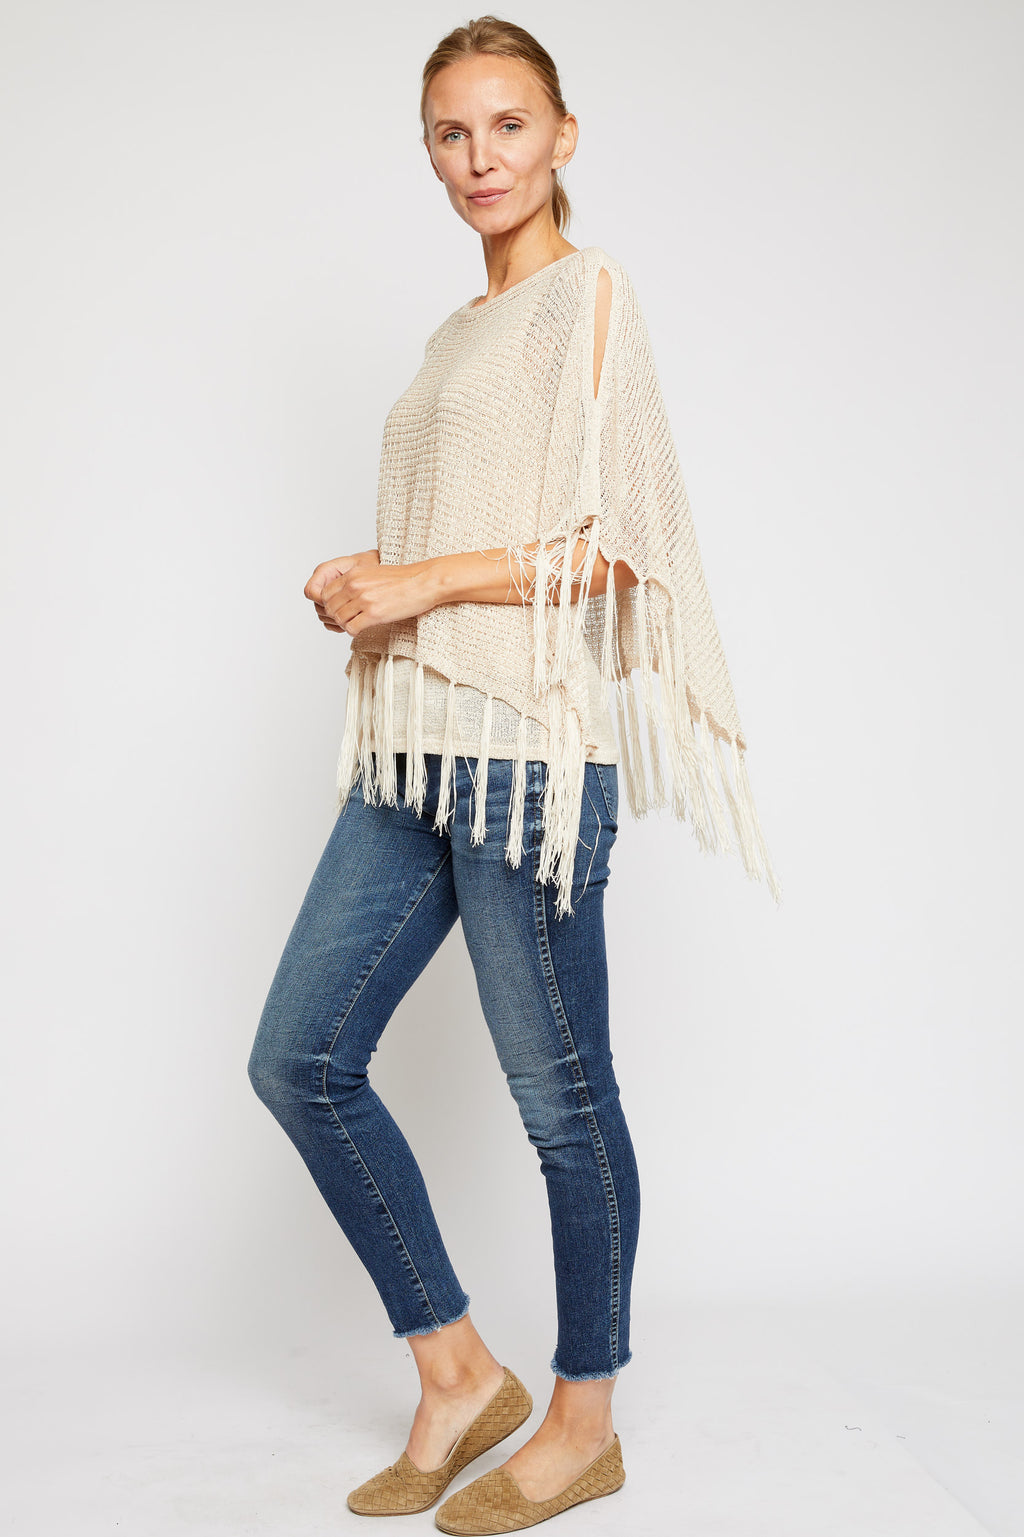 Fringe Sweater Cap Sweater - Jacqueline B Clothing